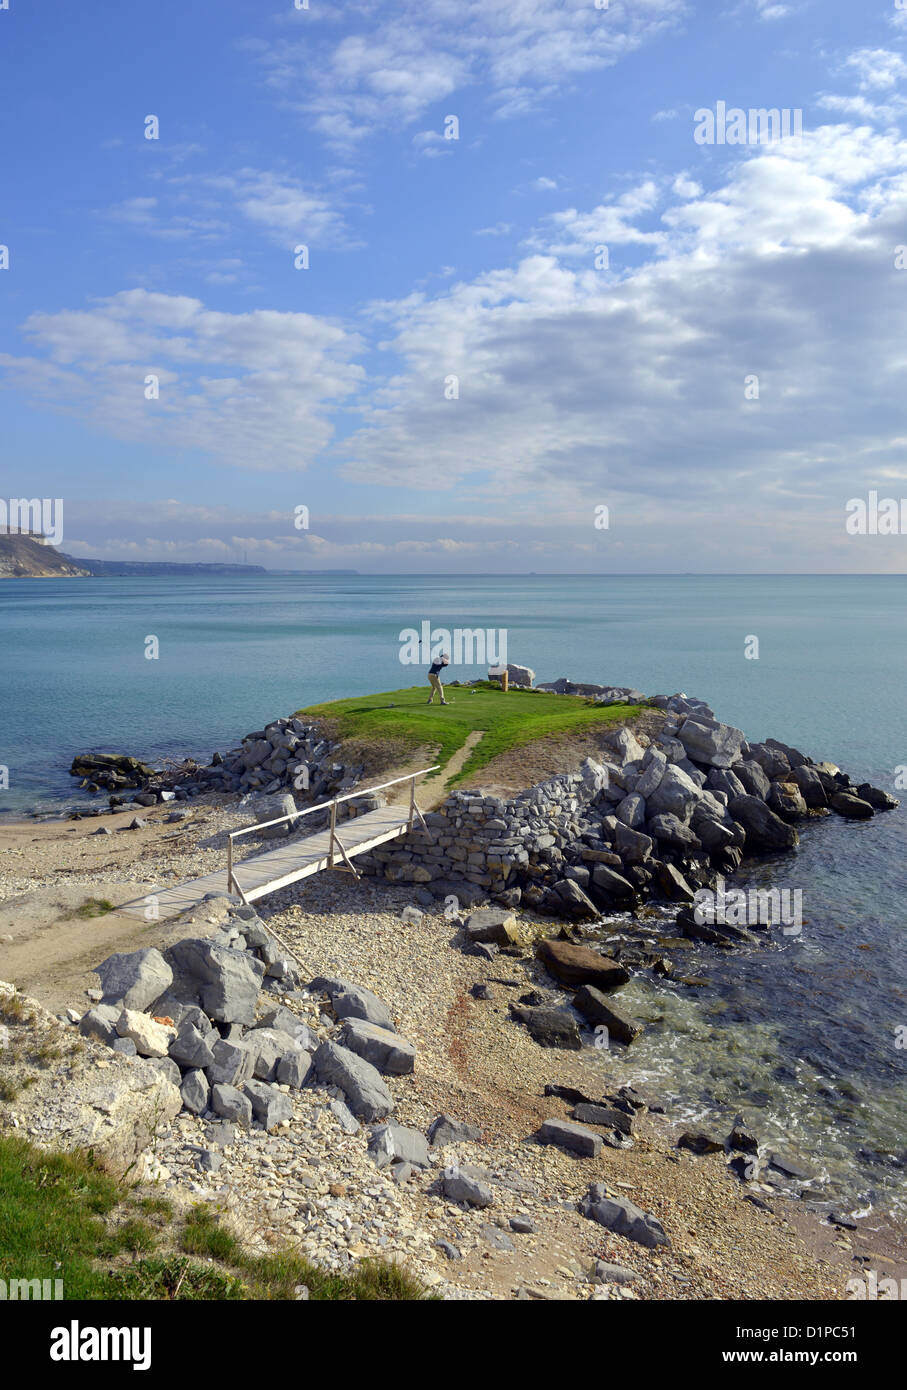 Thracian Cliffs Golf Course, Kavarna, Bulgaria - Stock Image